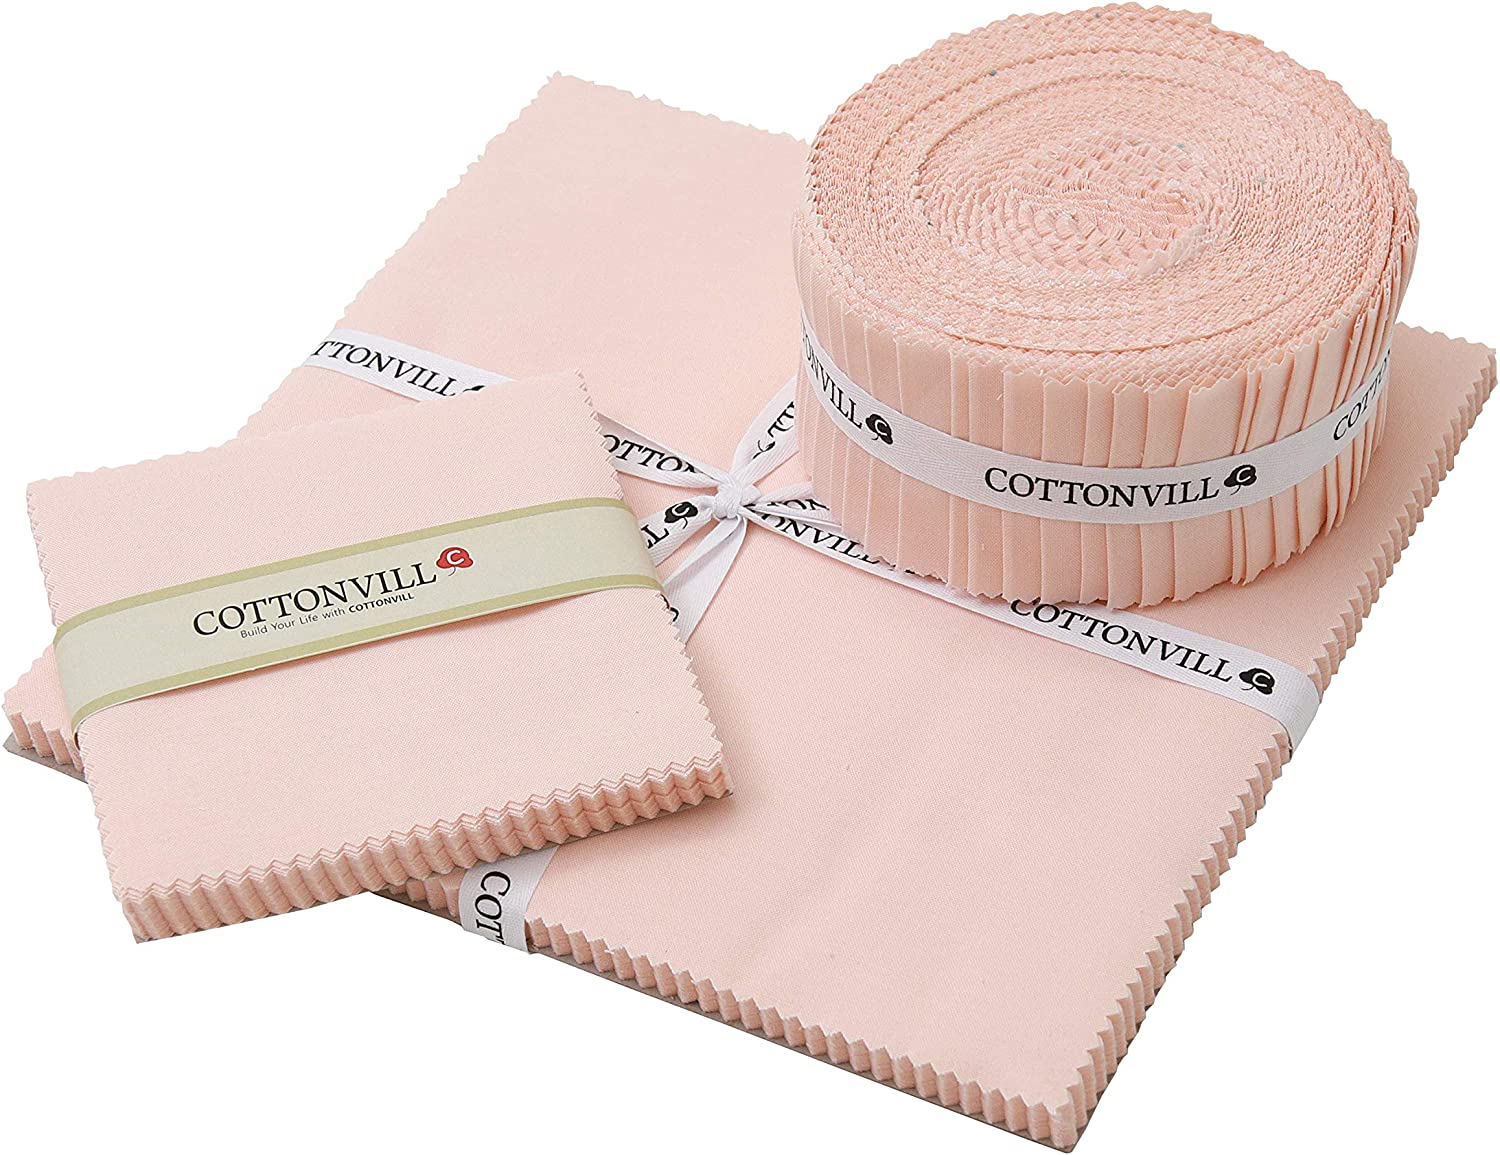 5inch square, 04-Light Gray COTTONVILL 20COUNT Cotton Solid Quilting Fabric